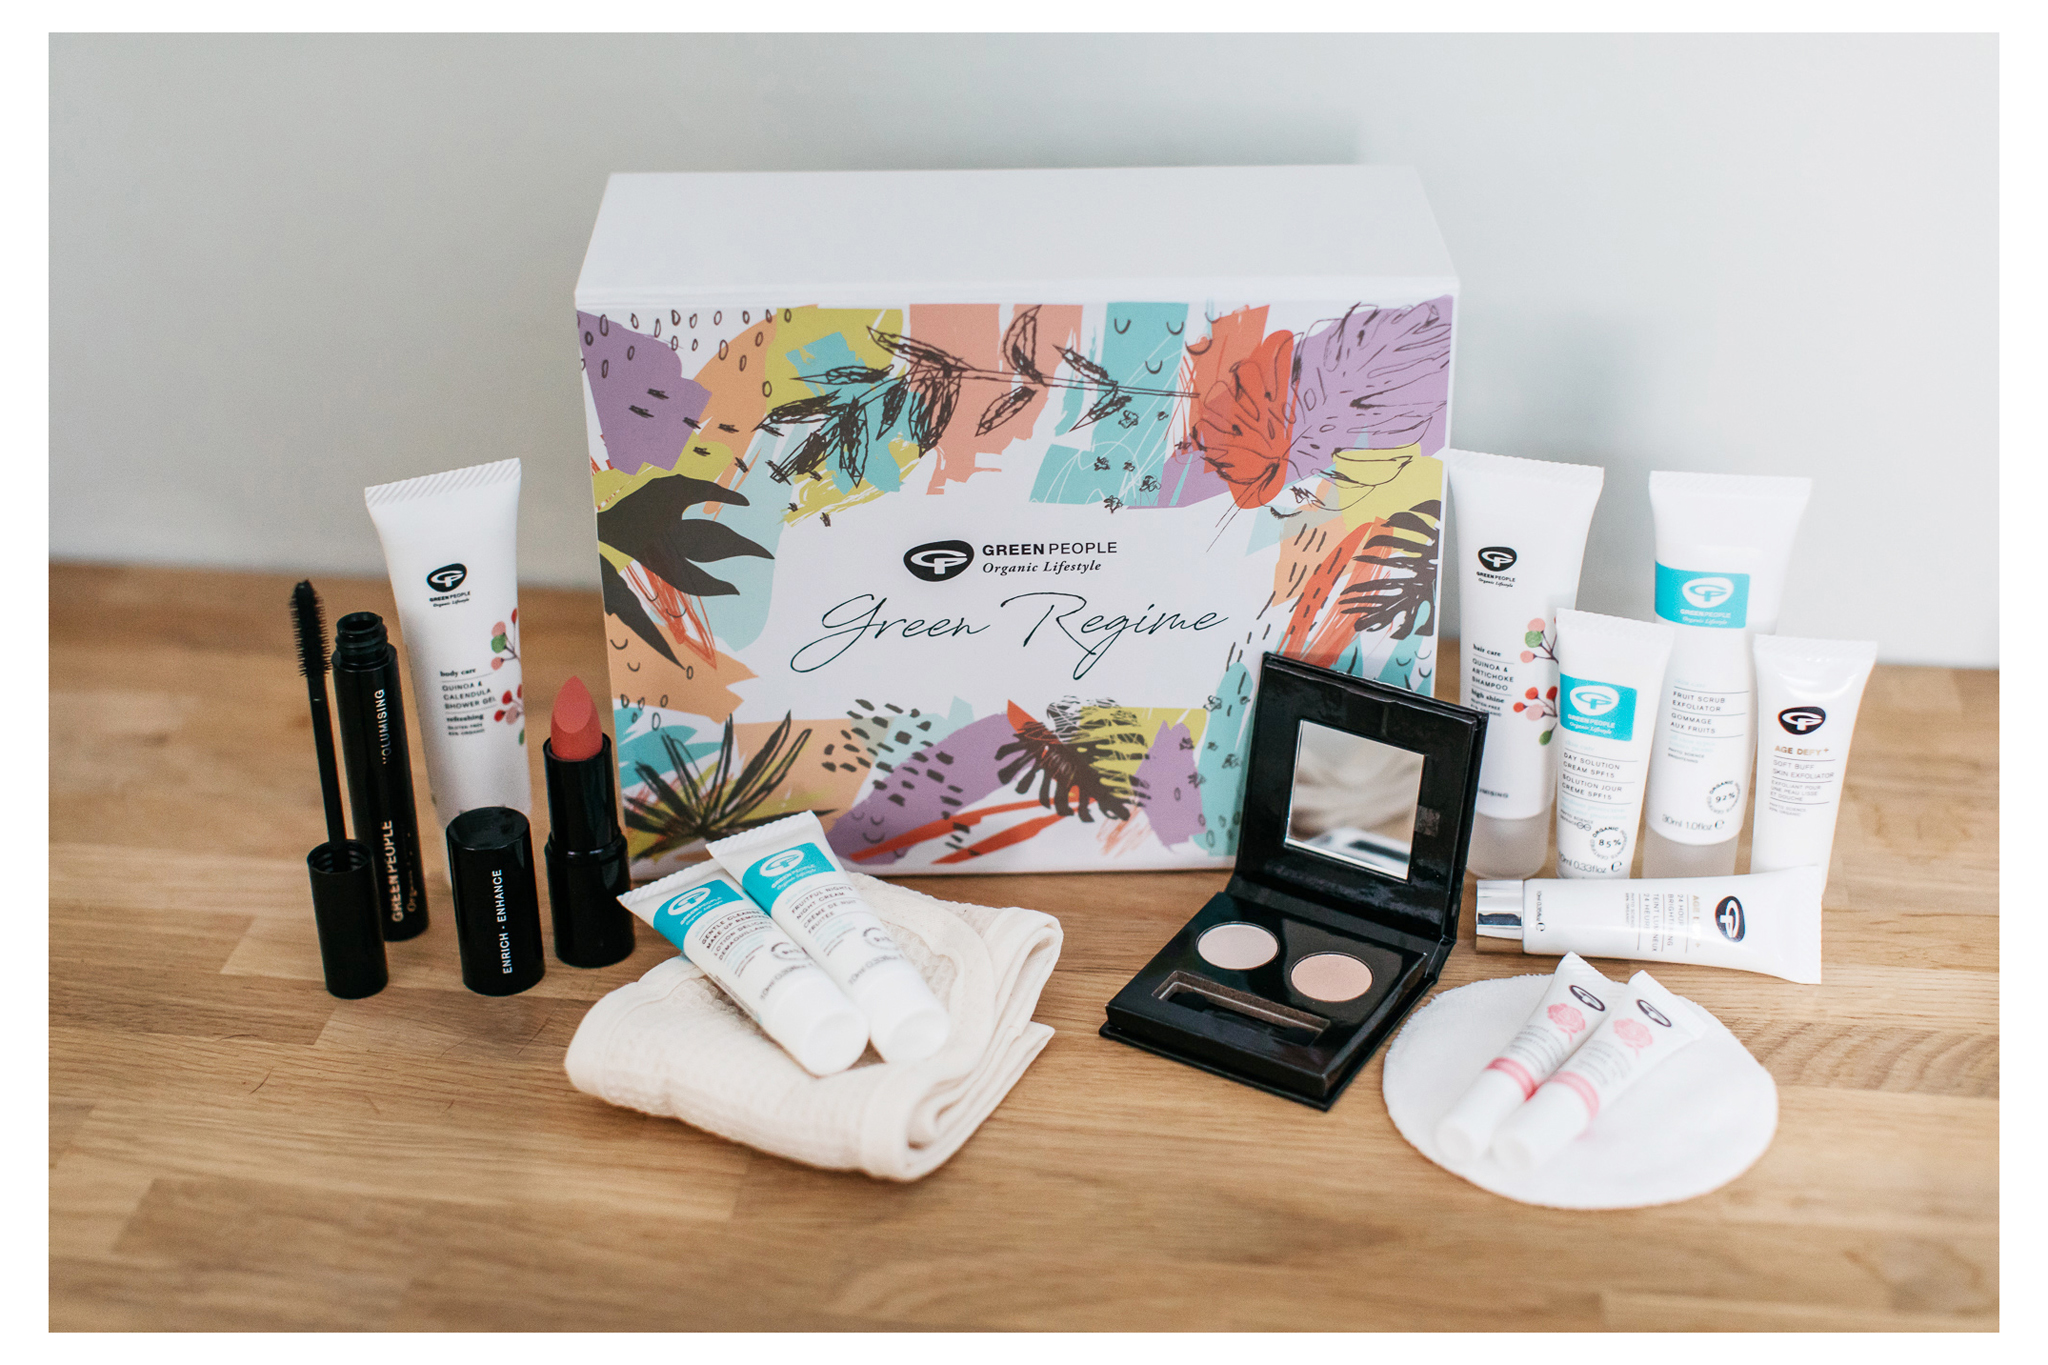 The Green People Green Regime advent calendar box is a great way to try new natural, organic and cruelty free skincare to find out what works for you. Retr~eat blog.